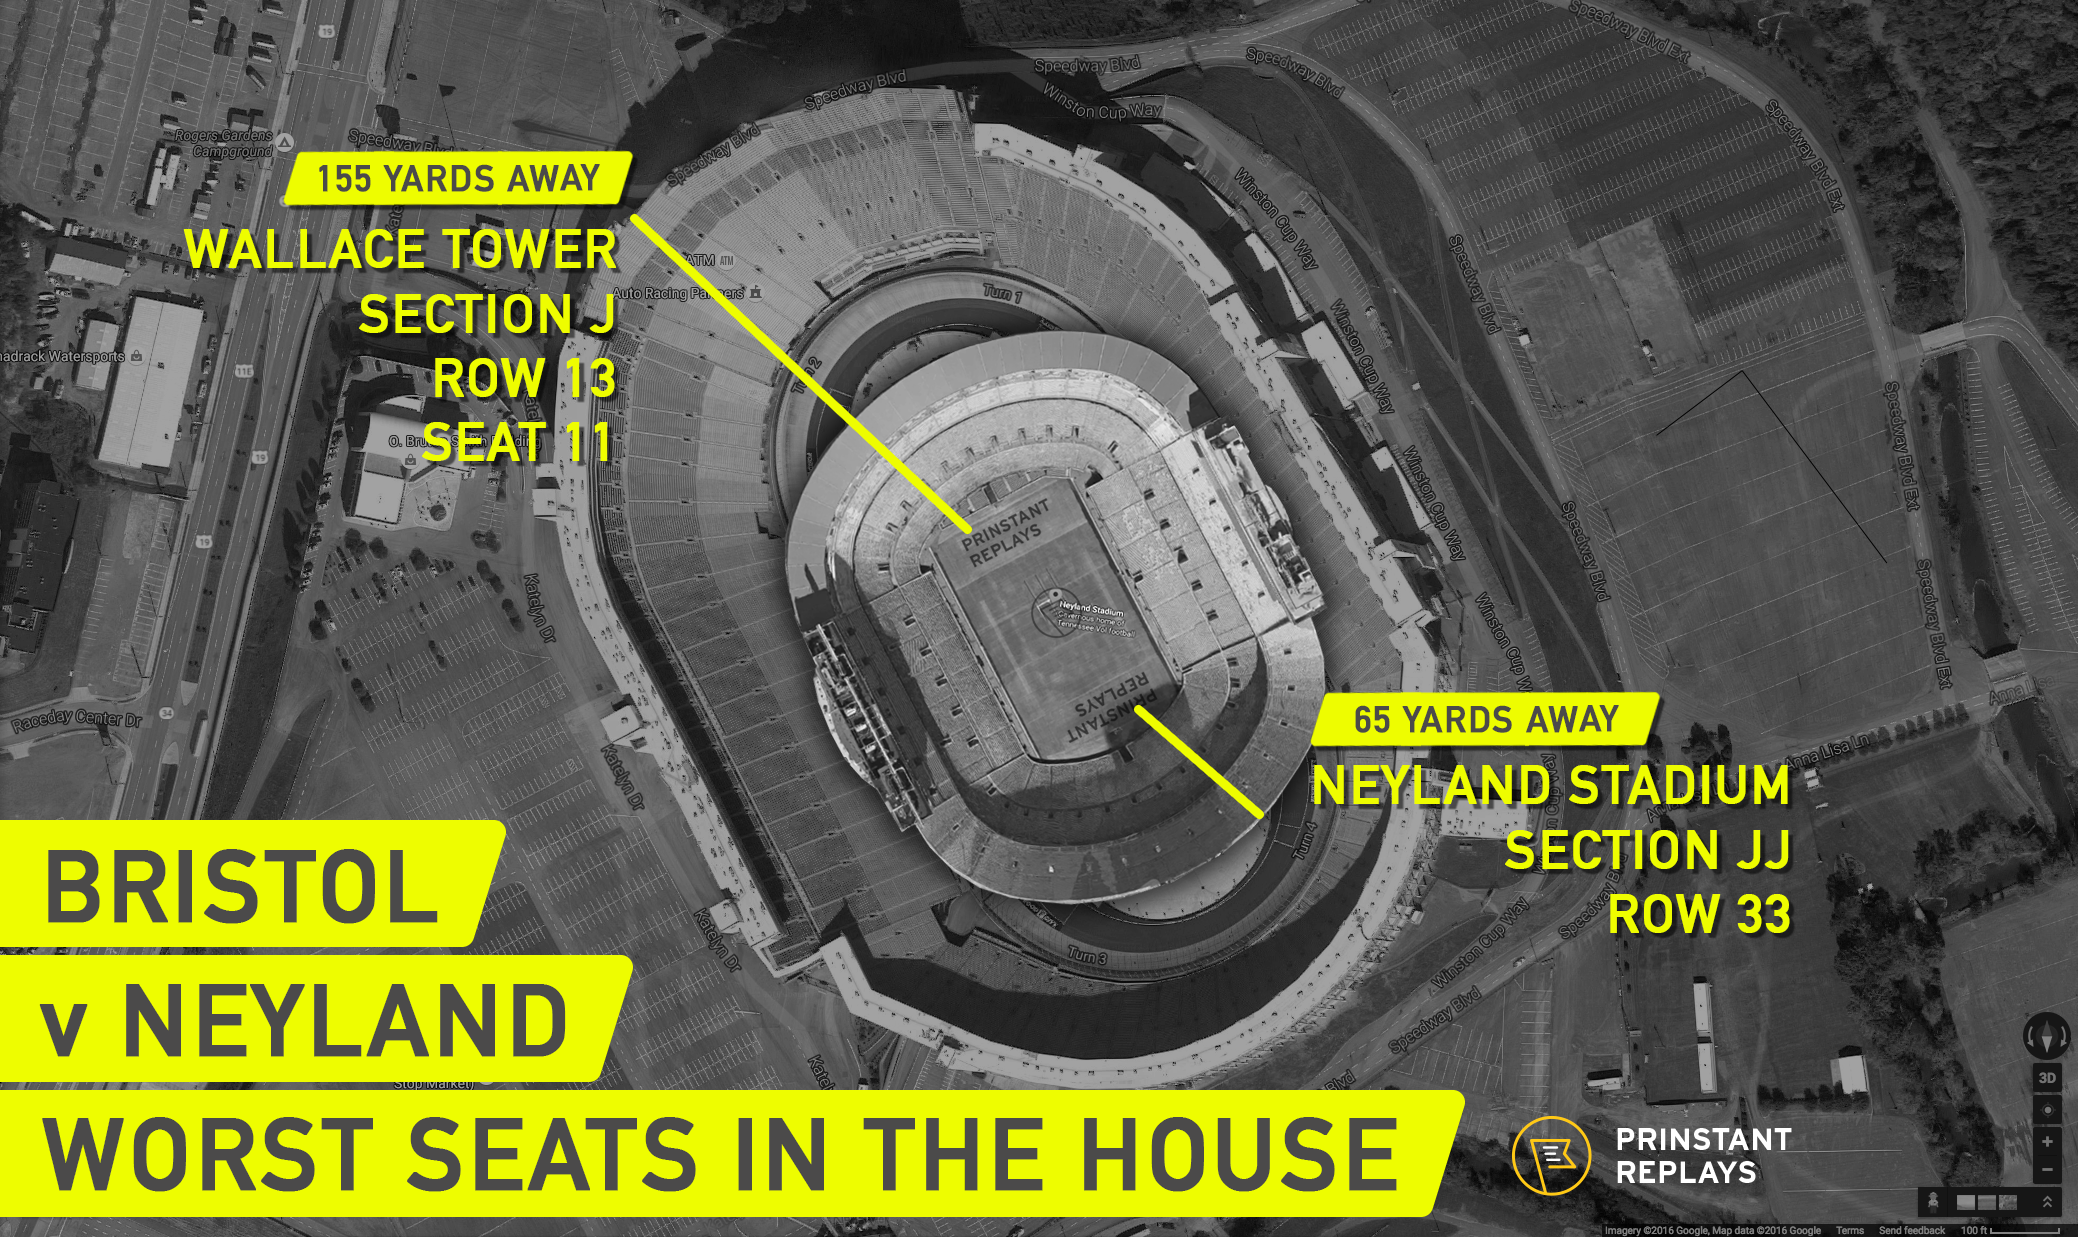 Bristol compared to Neyland Worst Seats by Prinstant Replays